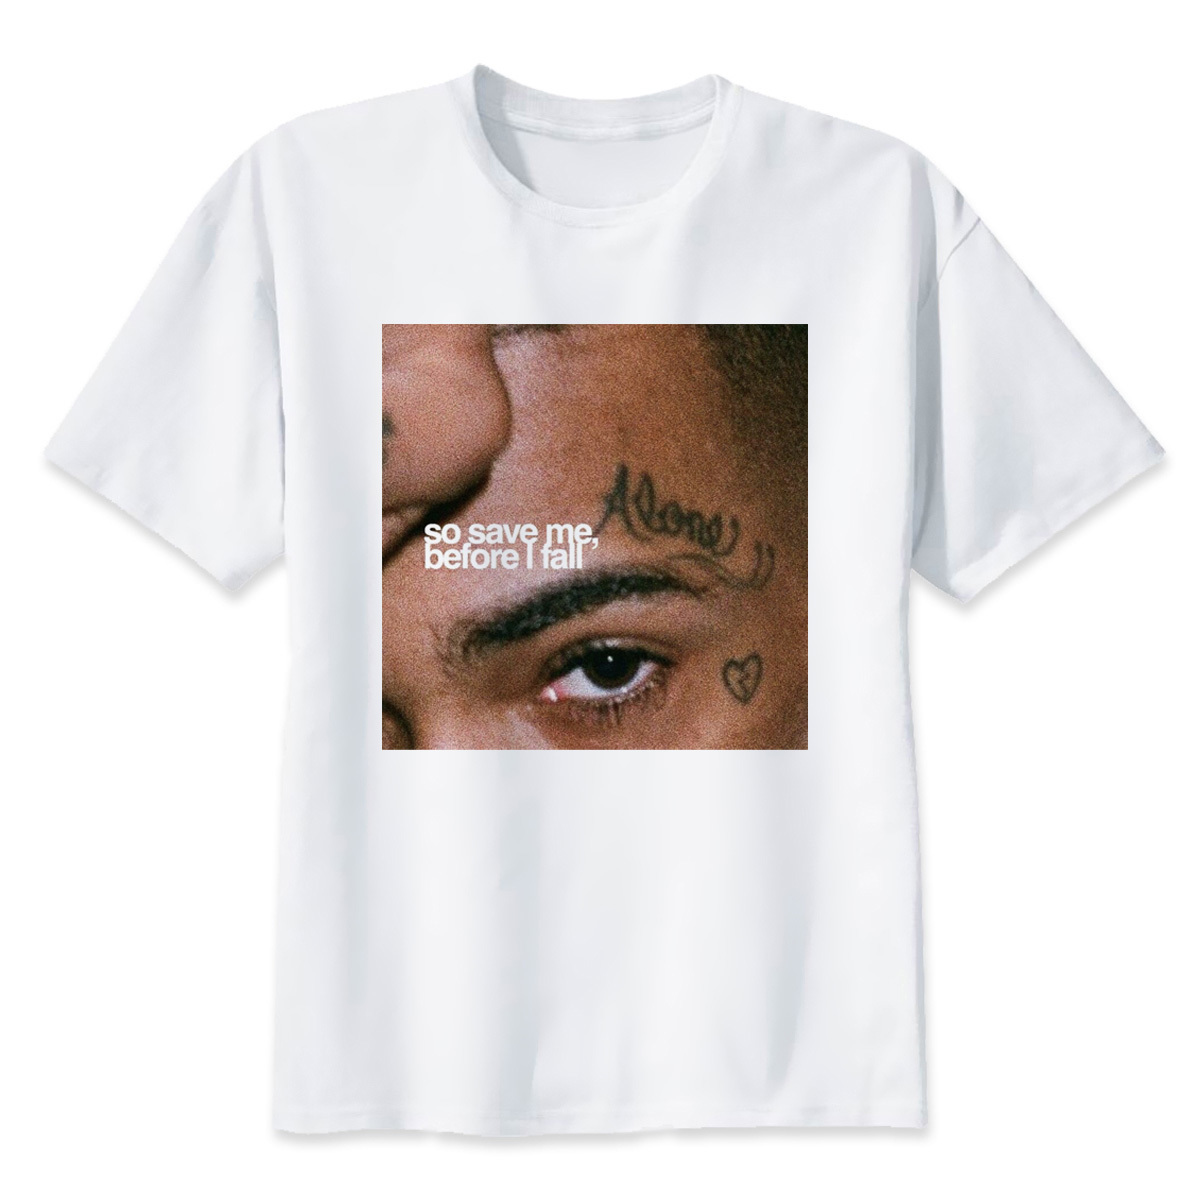 T-shirt Men Hip Hop XXXtentacion Graphic Top Quality 100% Cotton S-XL Shirts Men Rapper T Shirt So Save Me Before I Fall